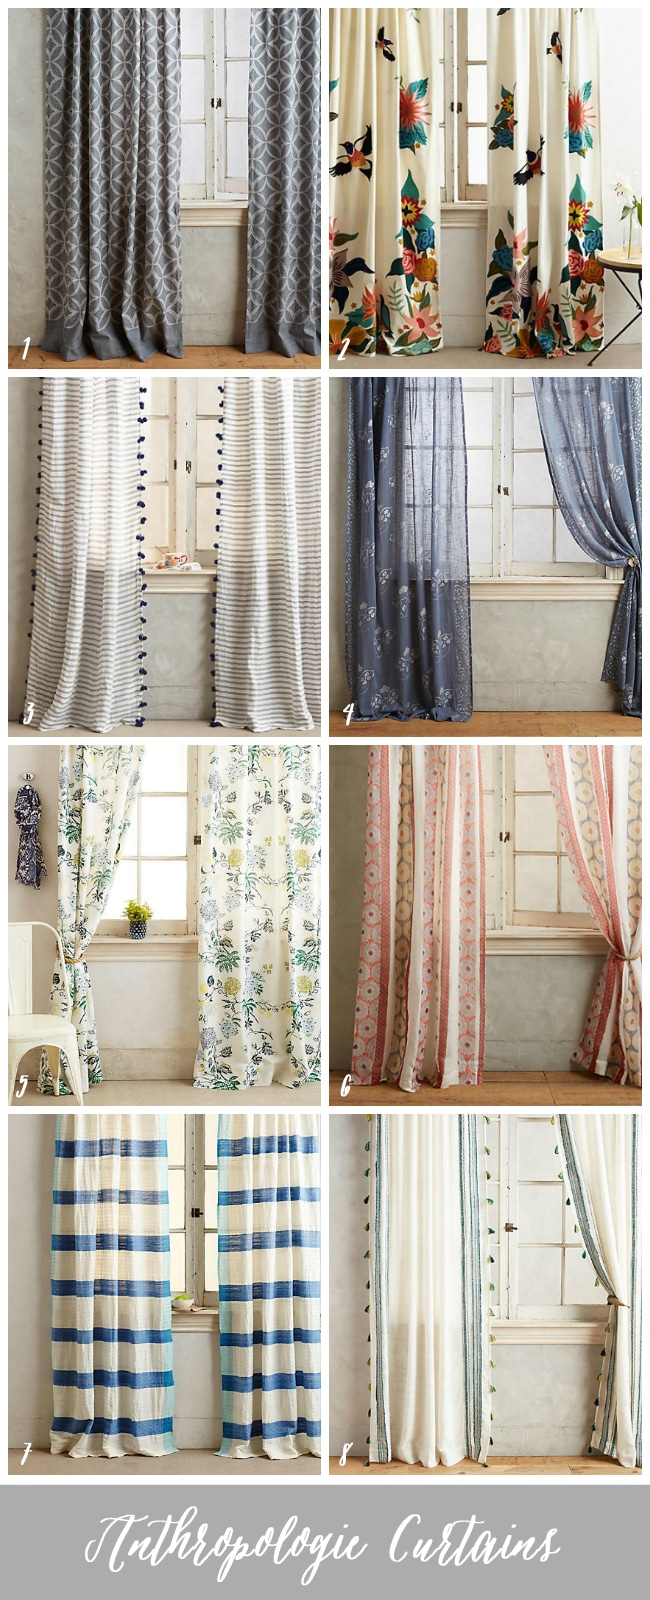 Curtains (source links in the post) that can make a statement in your room